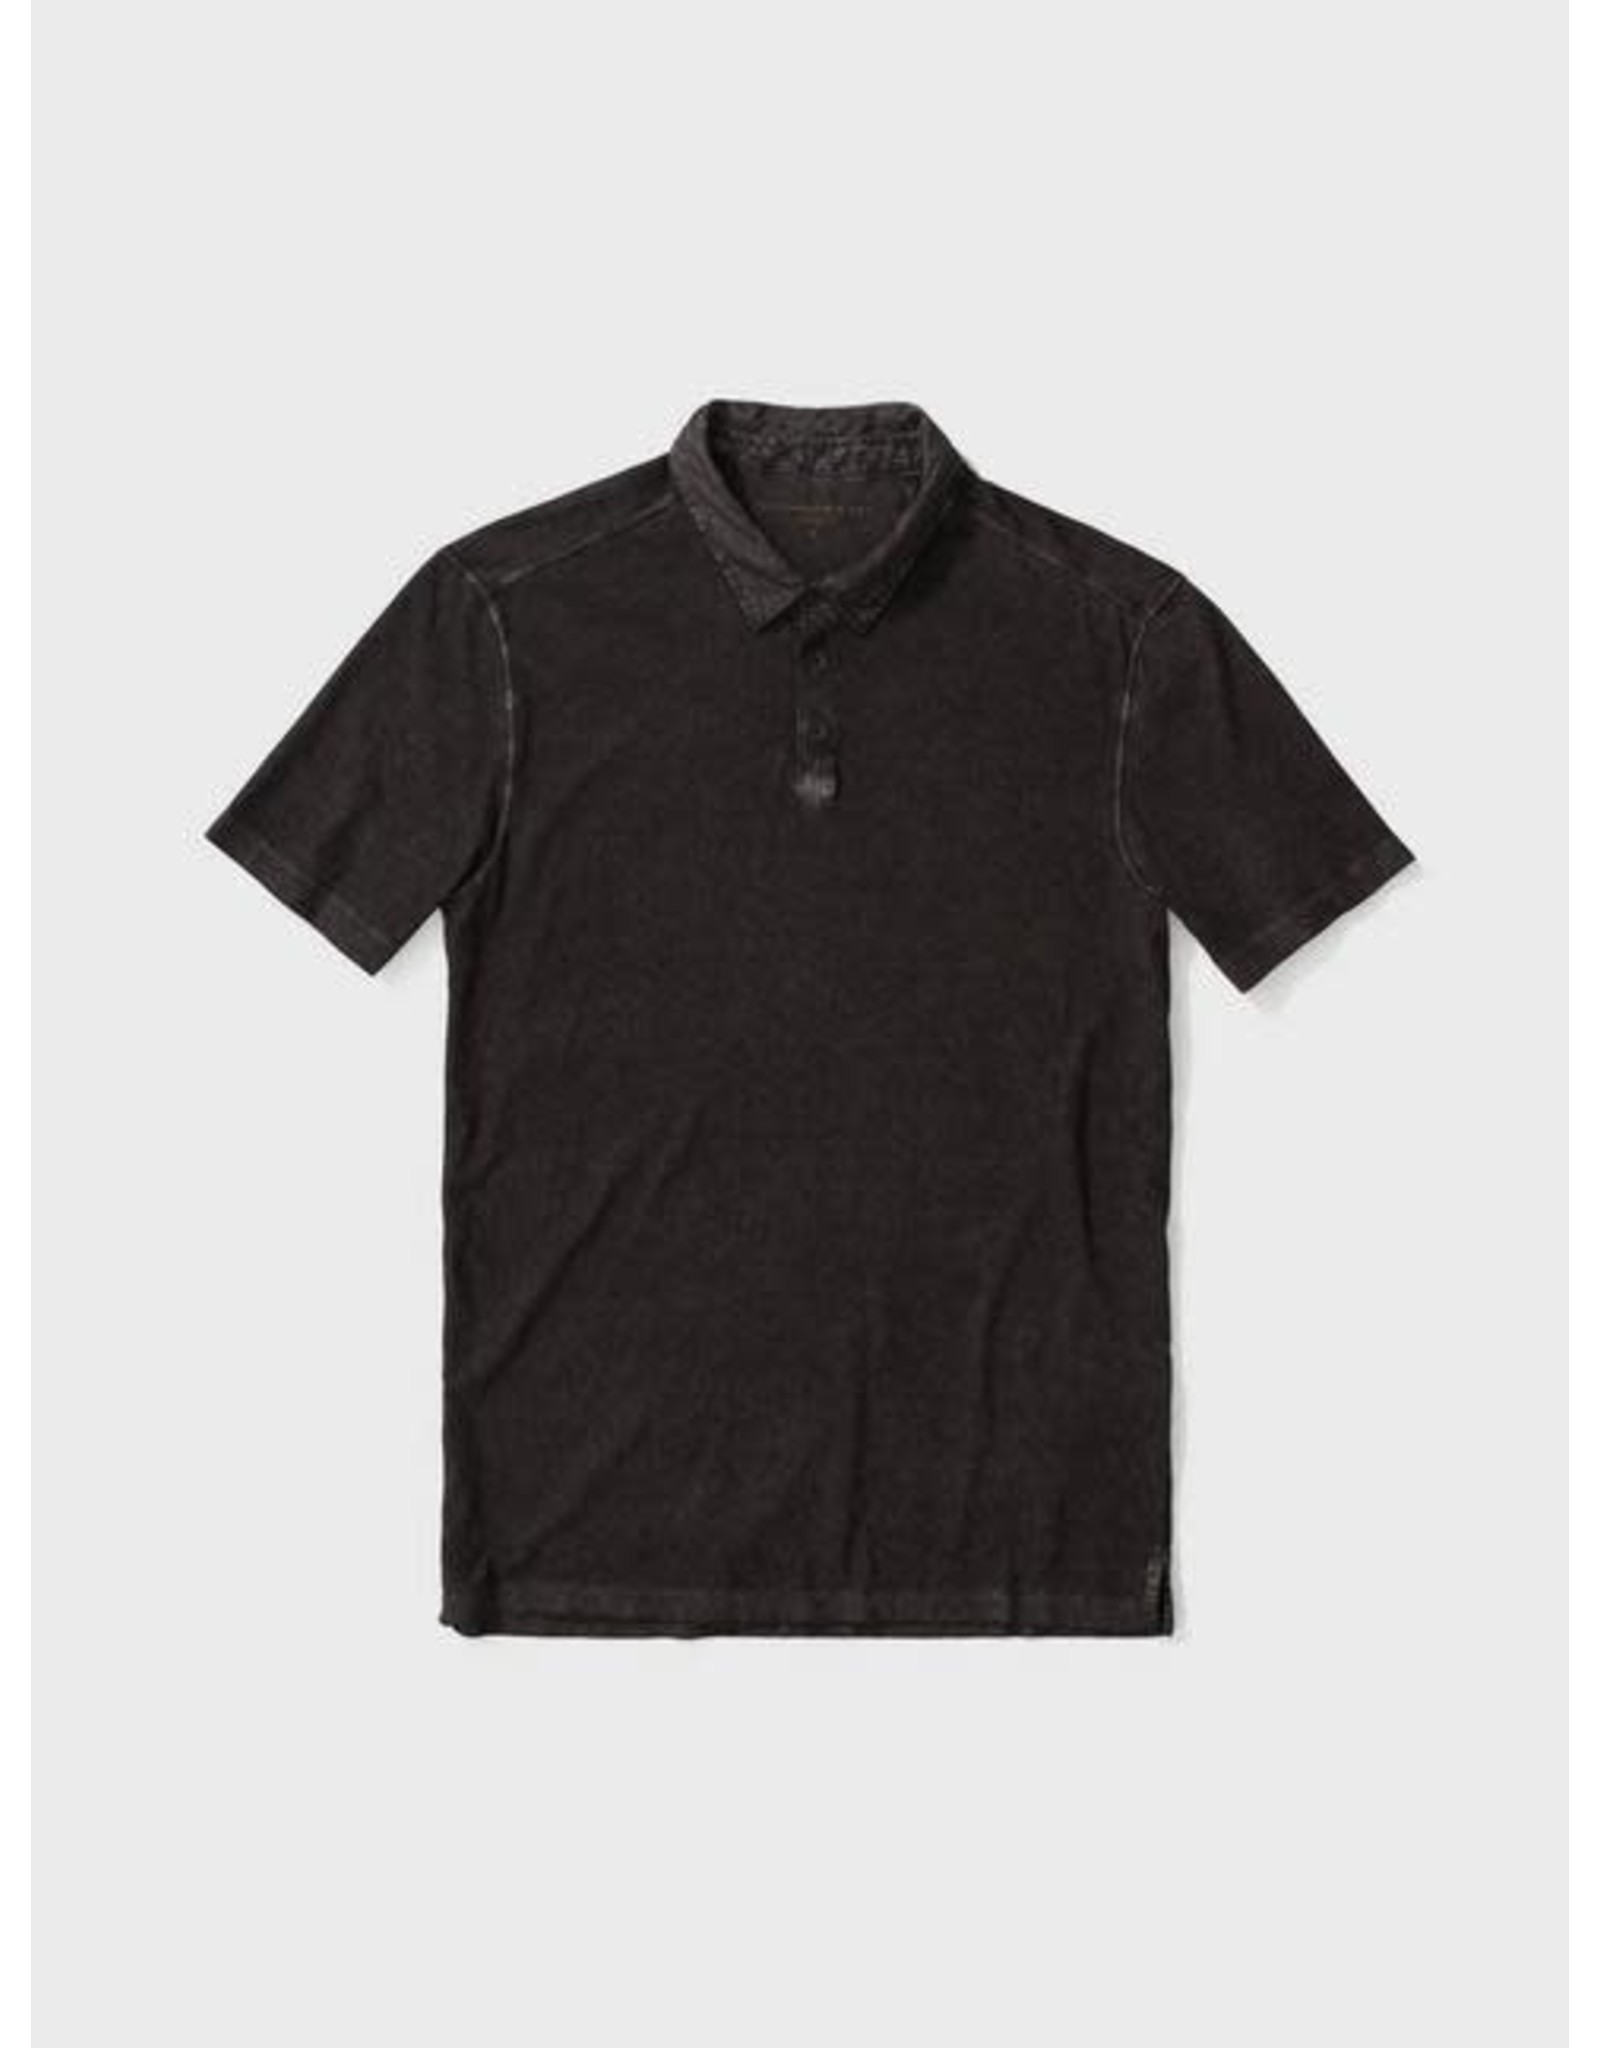 JOHN VARVATOS JOHN VARVATOS Short Sleeve Polo